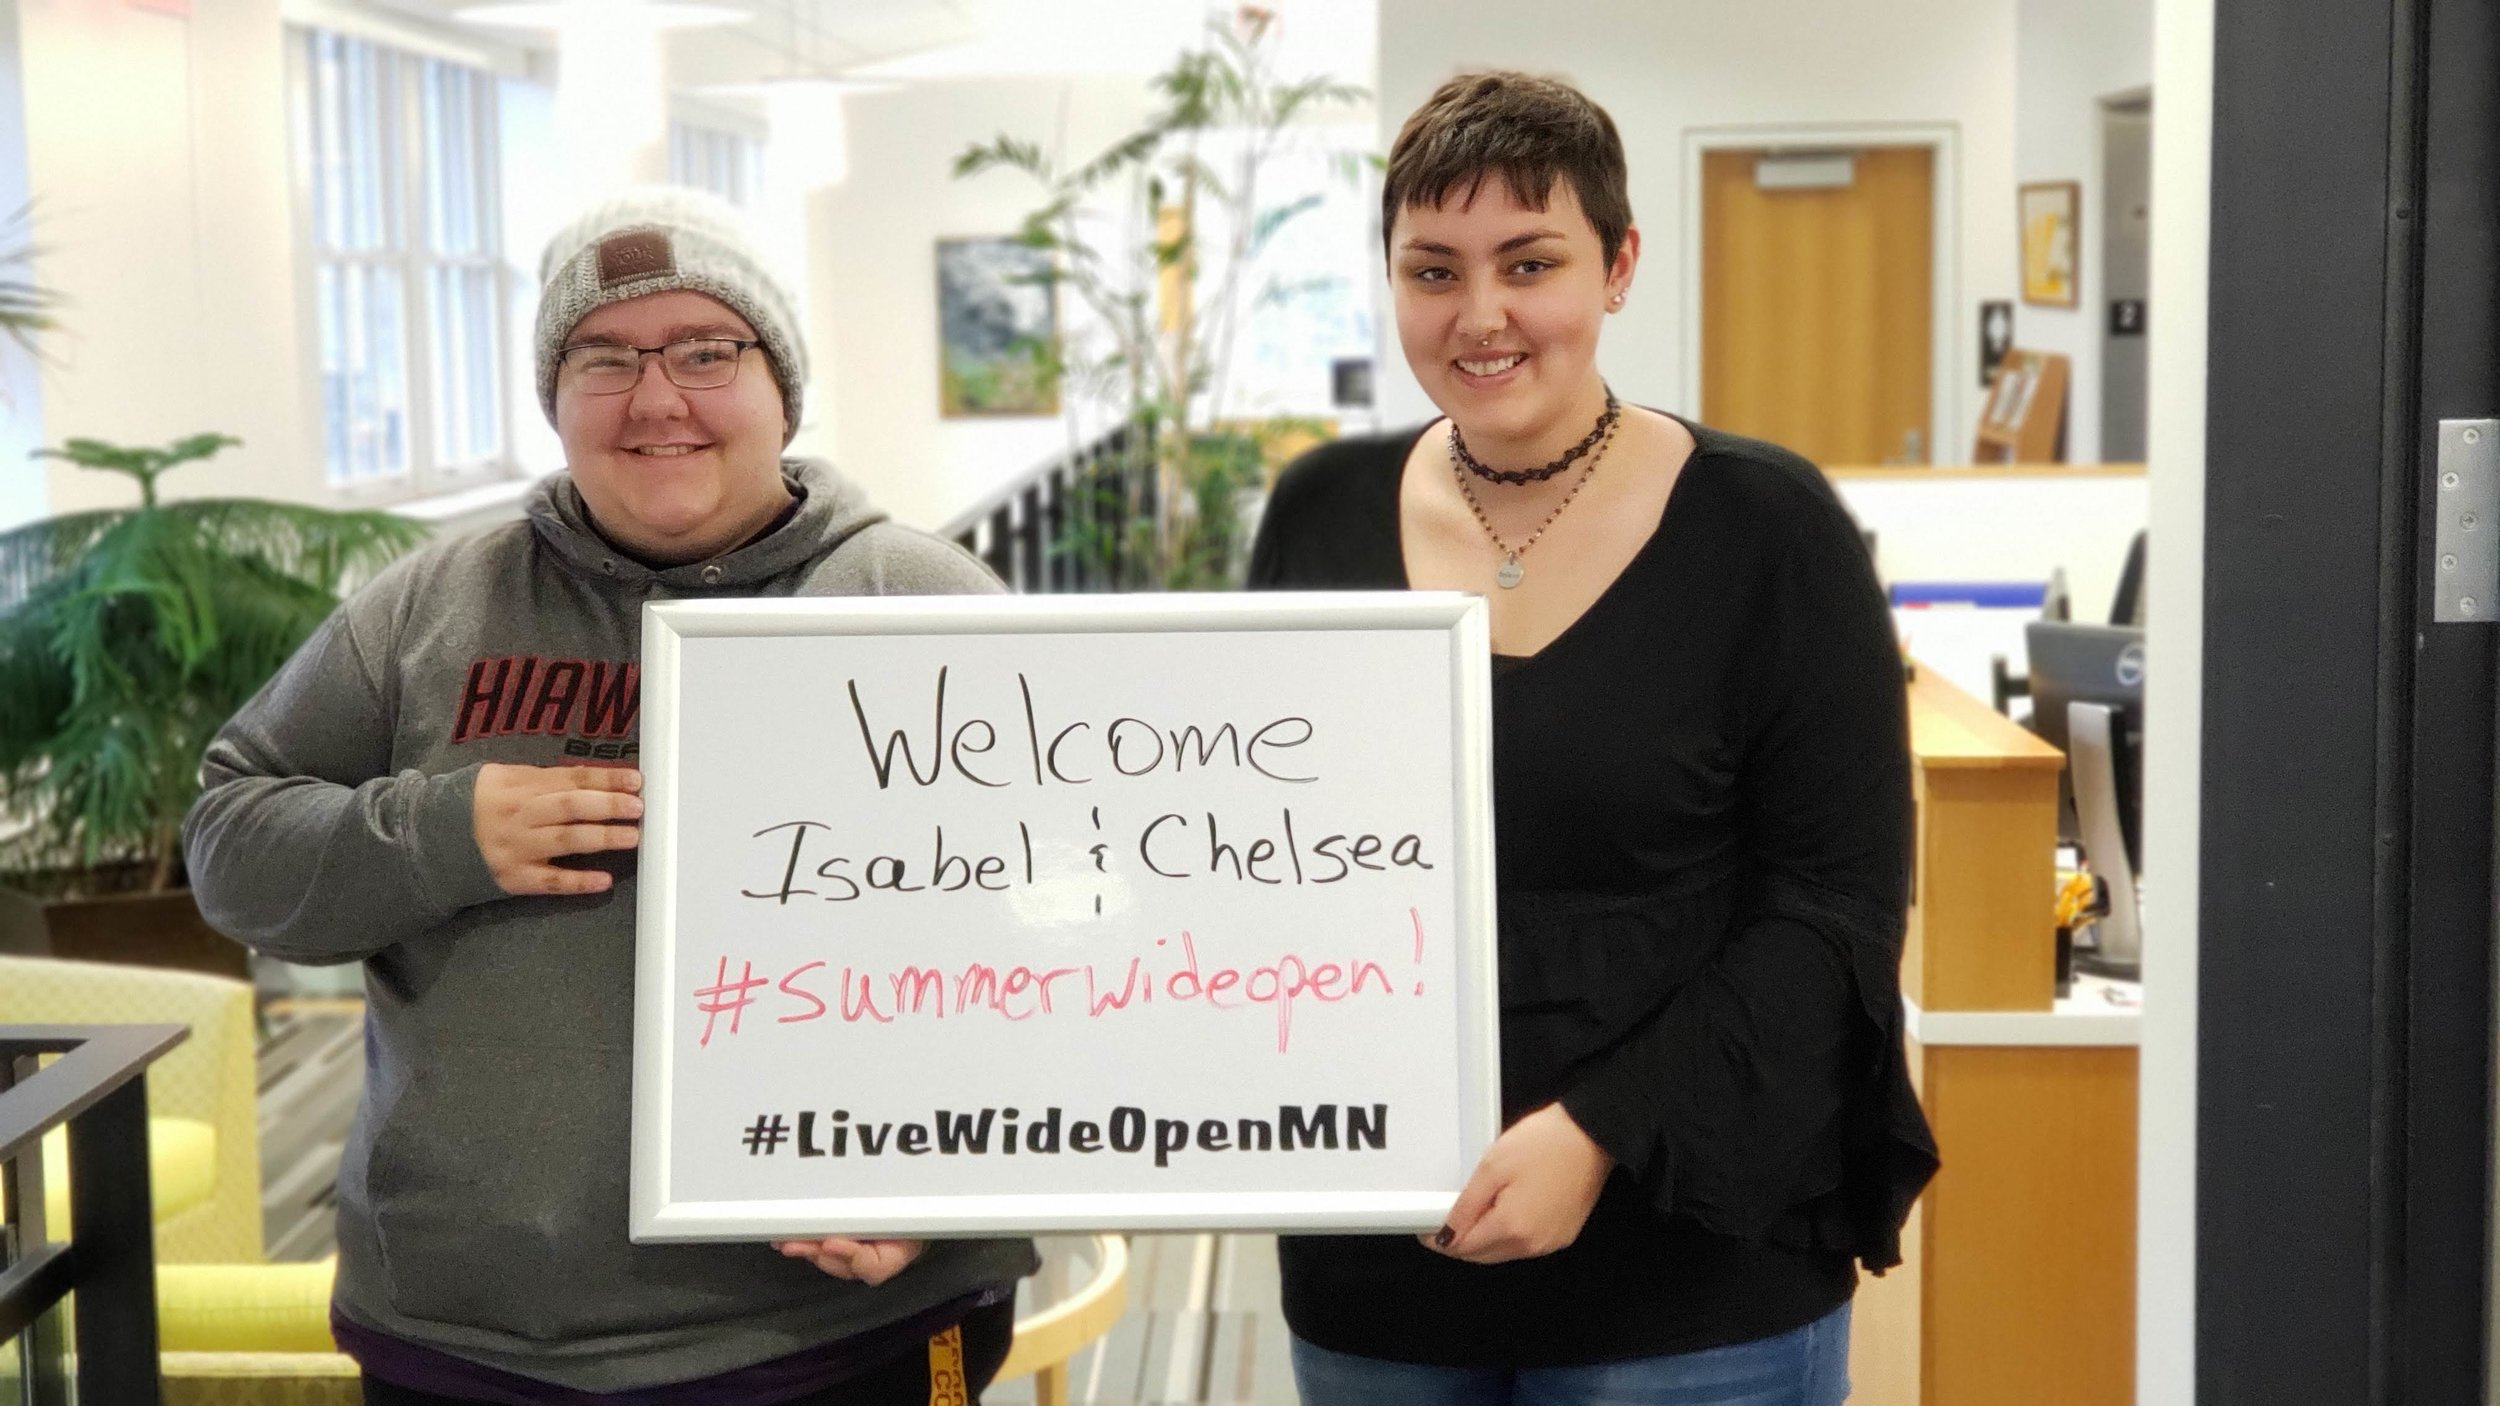 Chelsea (left) and Isabel are Live Wide Open summer interns!